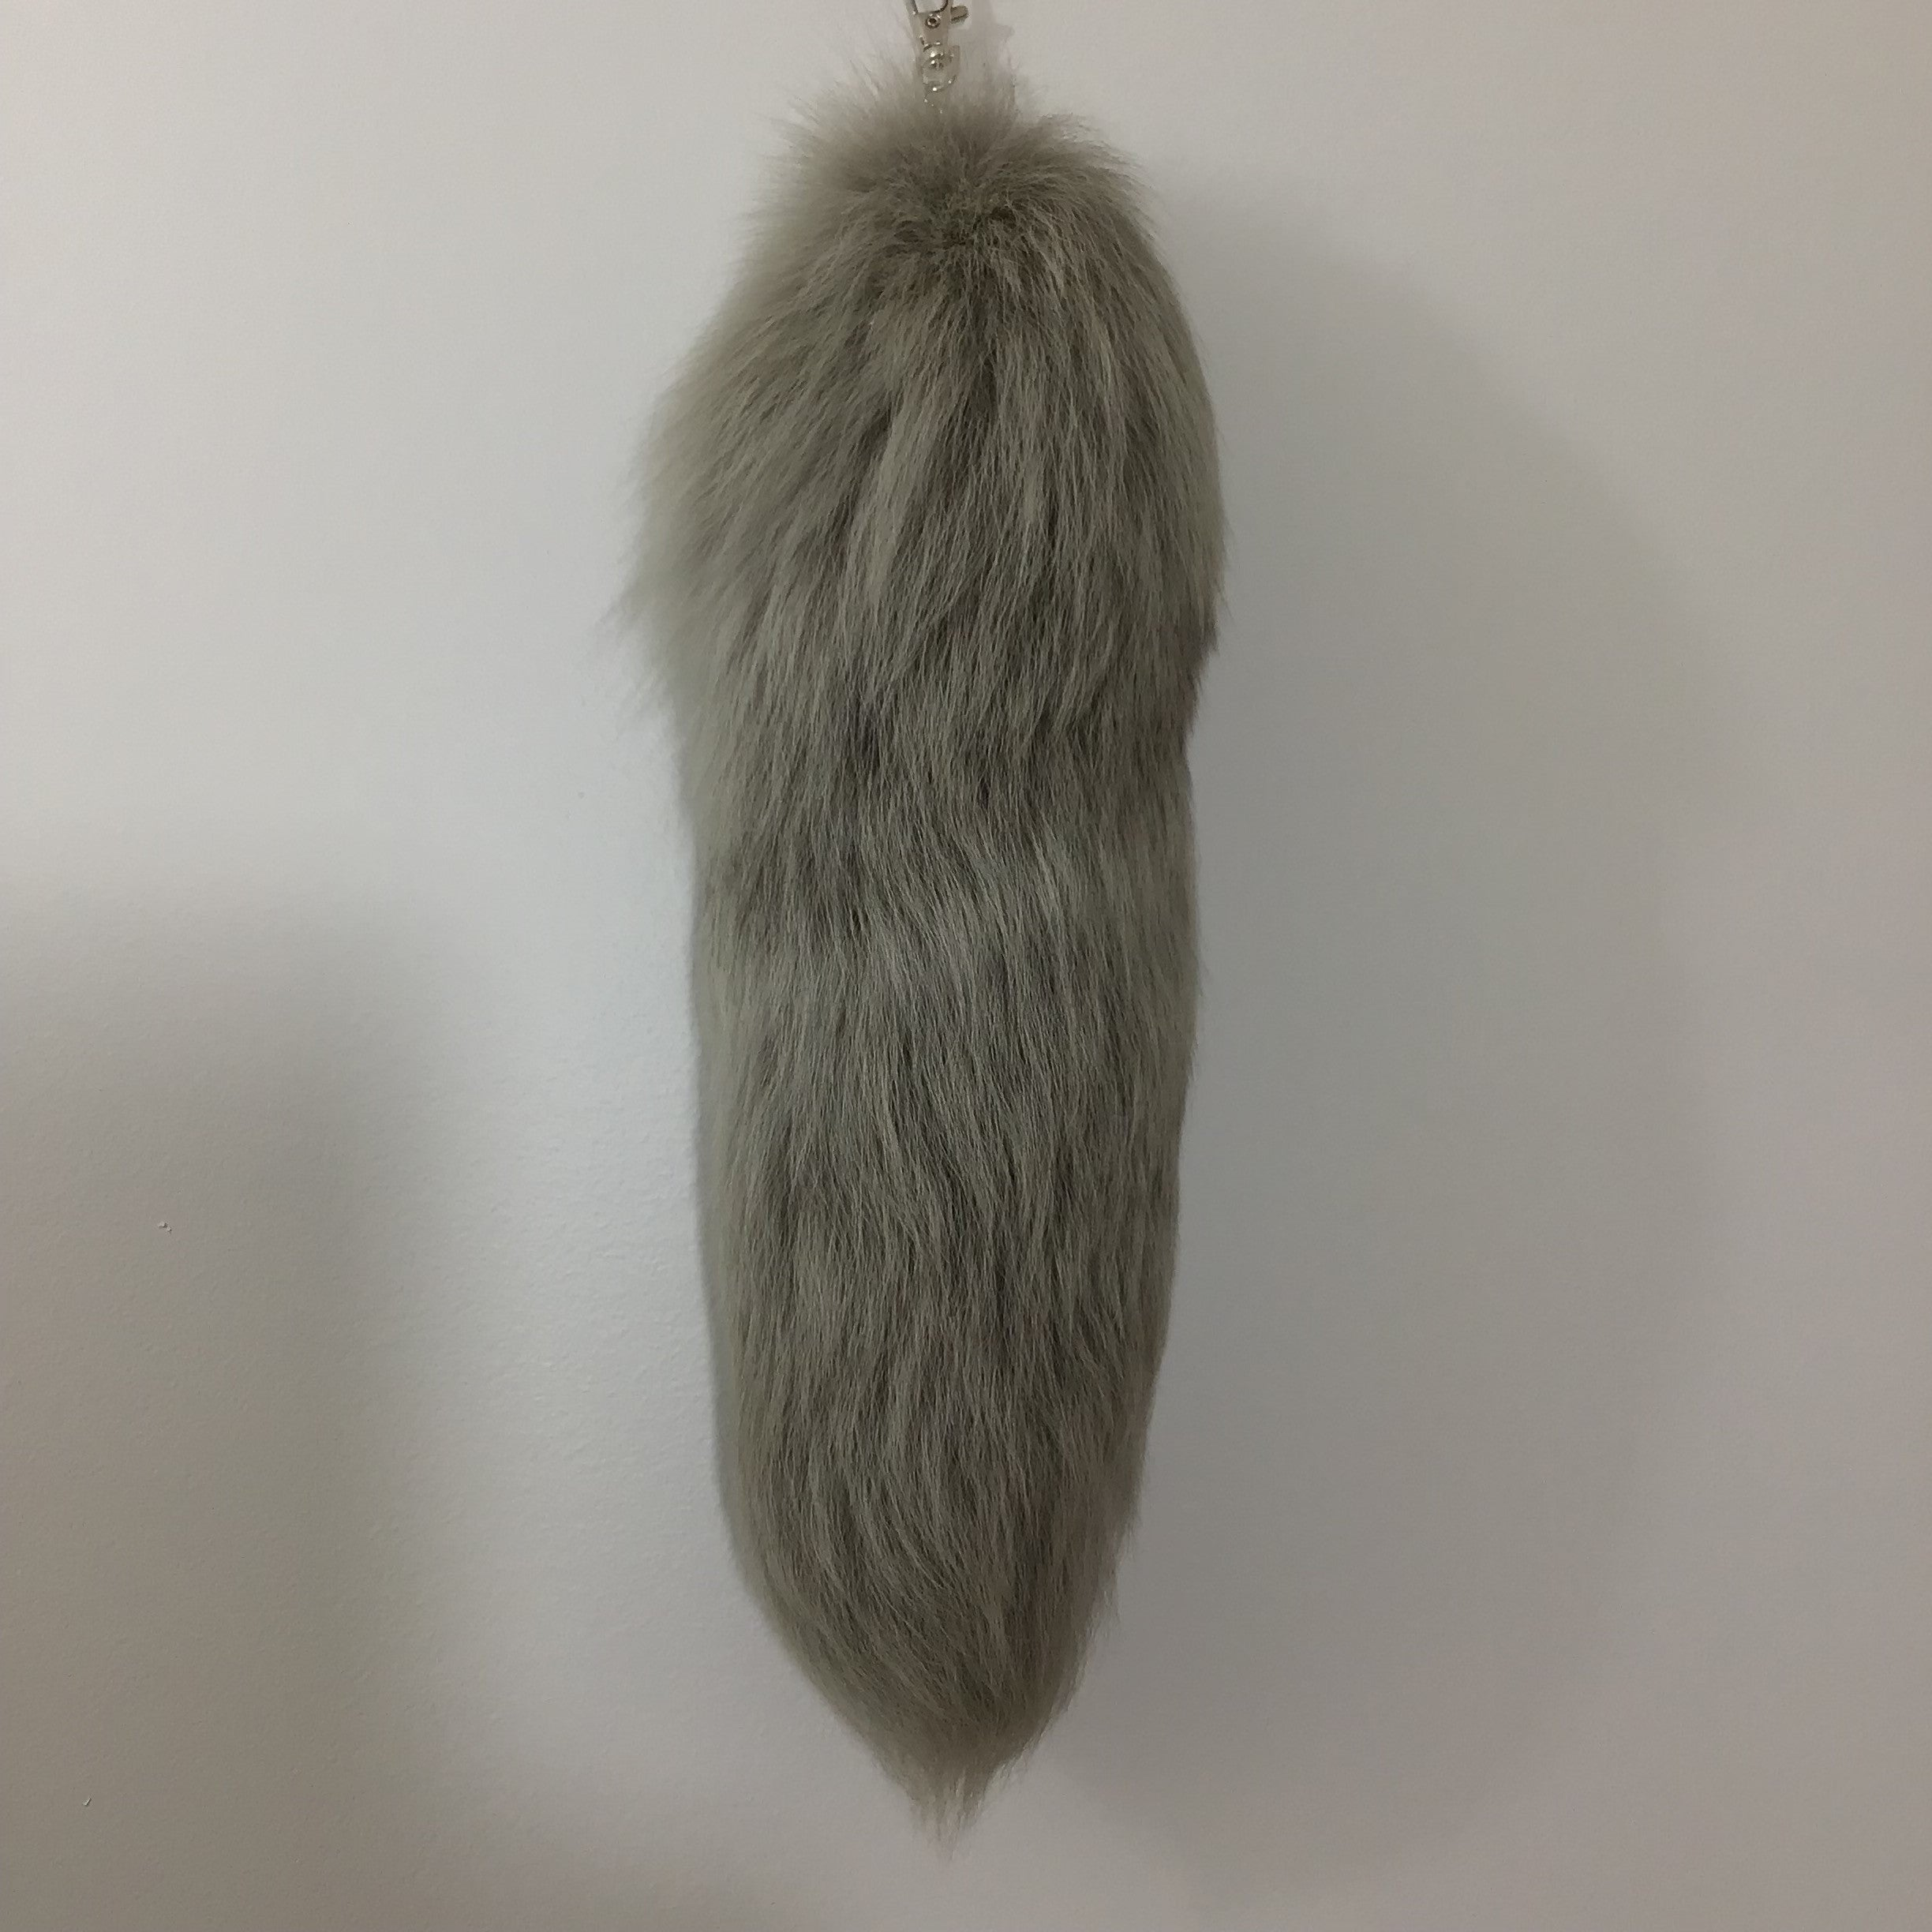 DYED MINK TAIL TAXIDERMY FOX PET TOYS M5 COYOTE CHARMING FUR TAILS